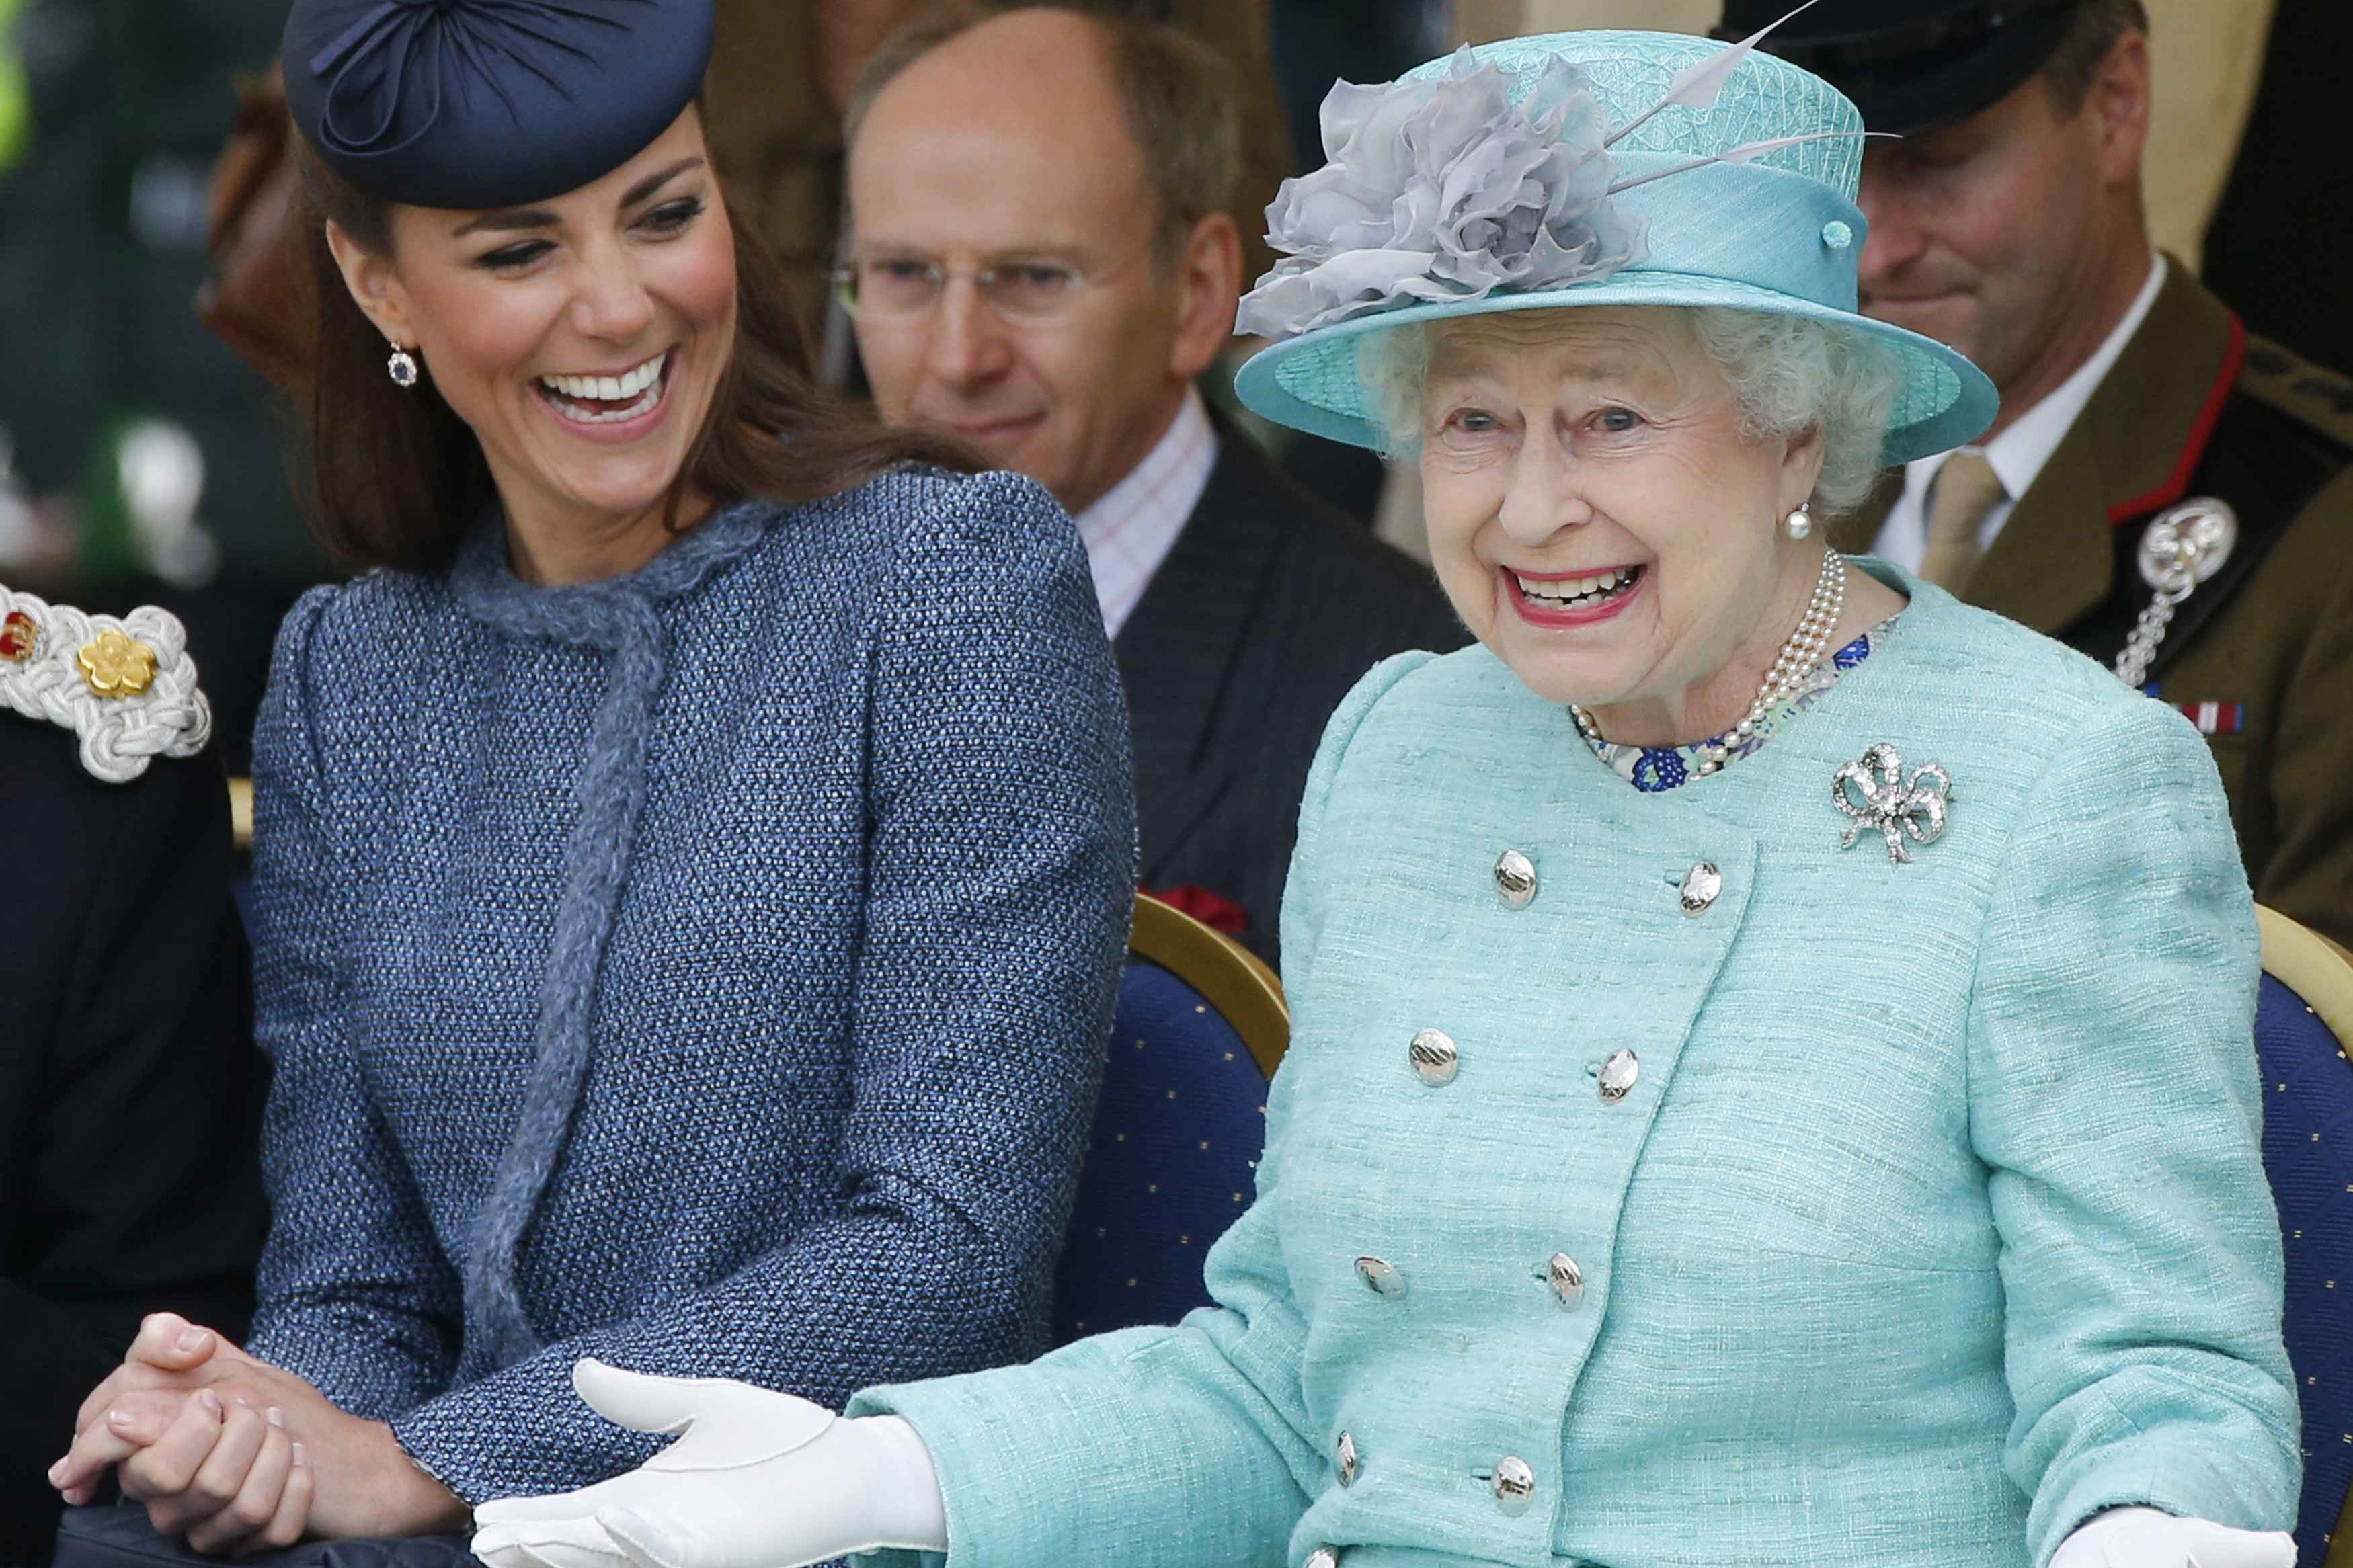 Queen Elizabeth Reportedly Once Brought 40 Suitcases to Visit Prince Philip